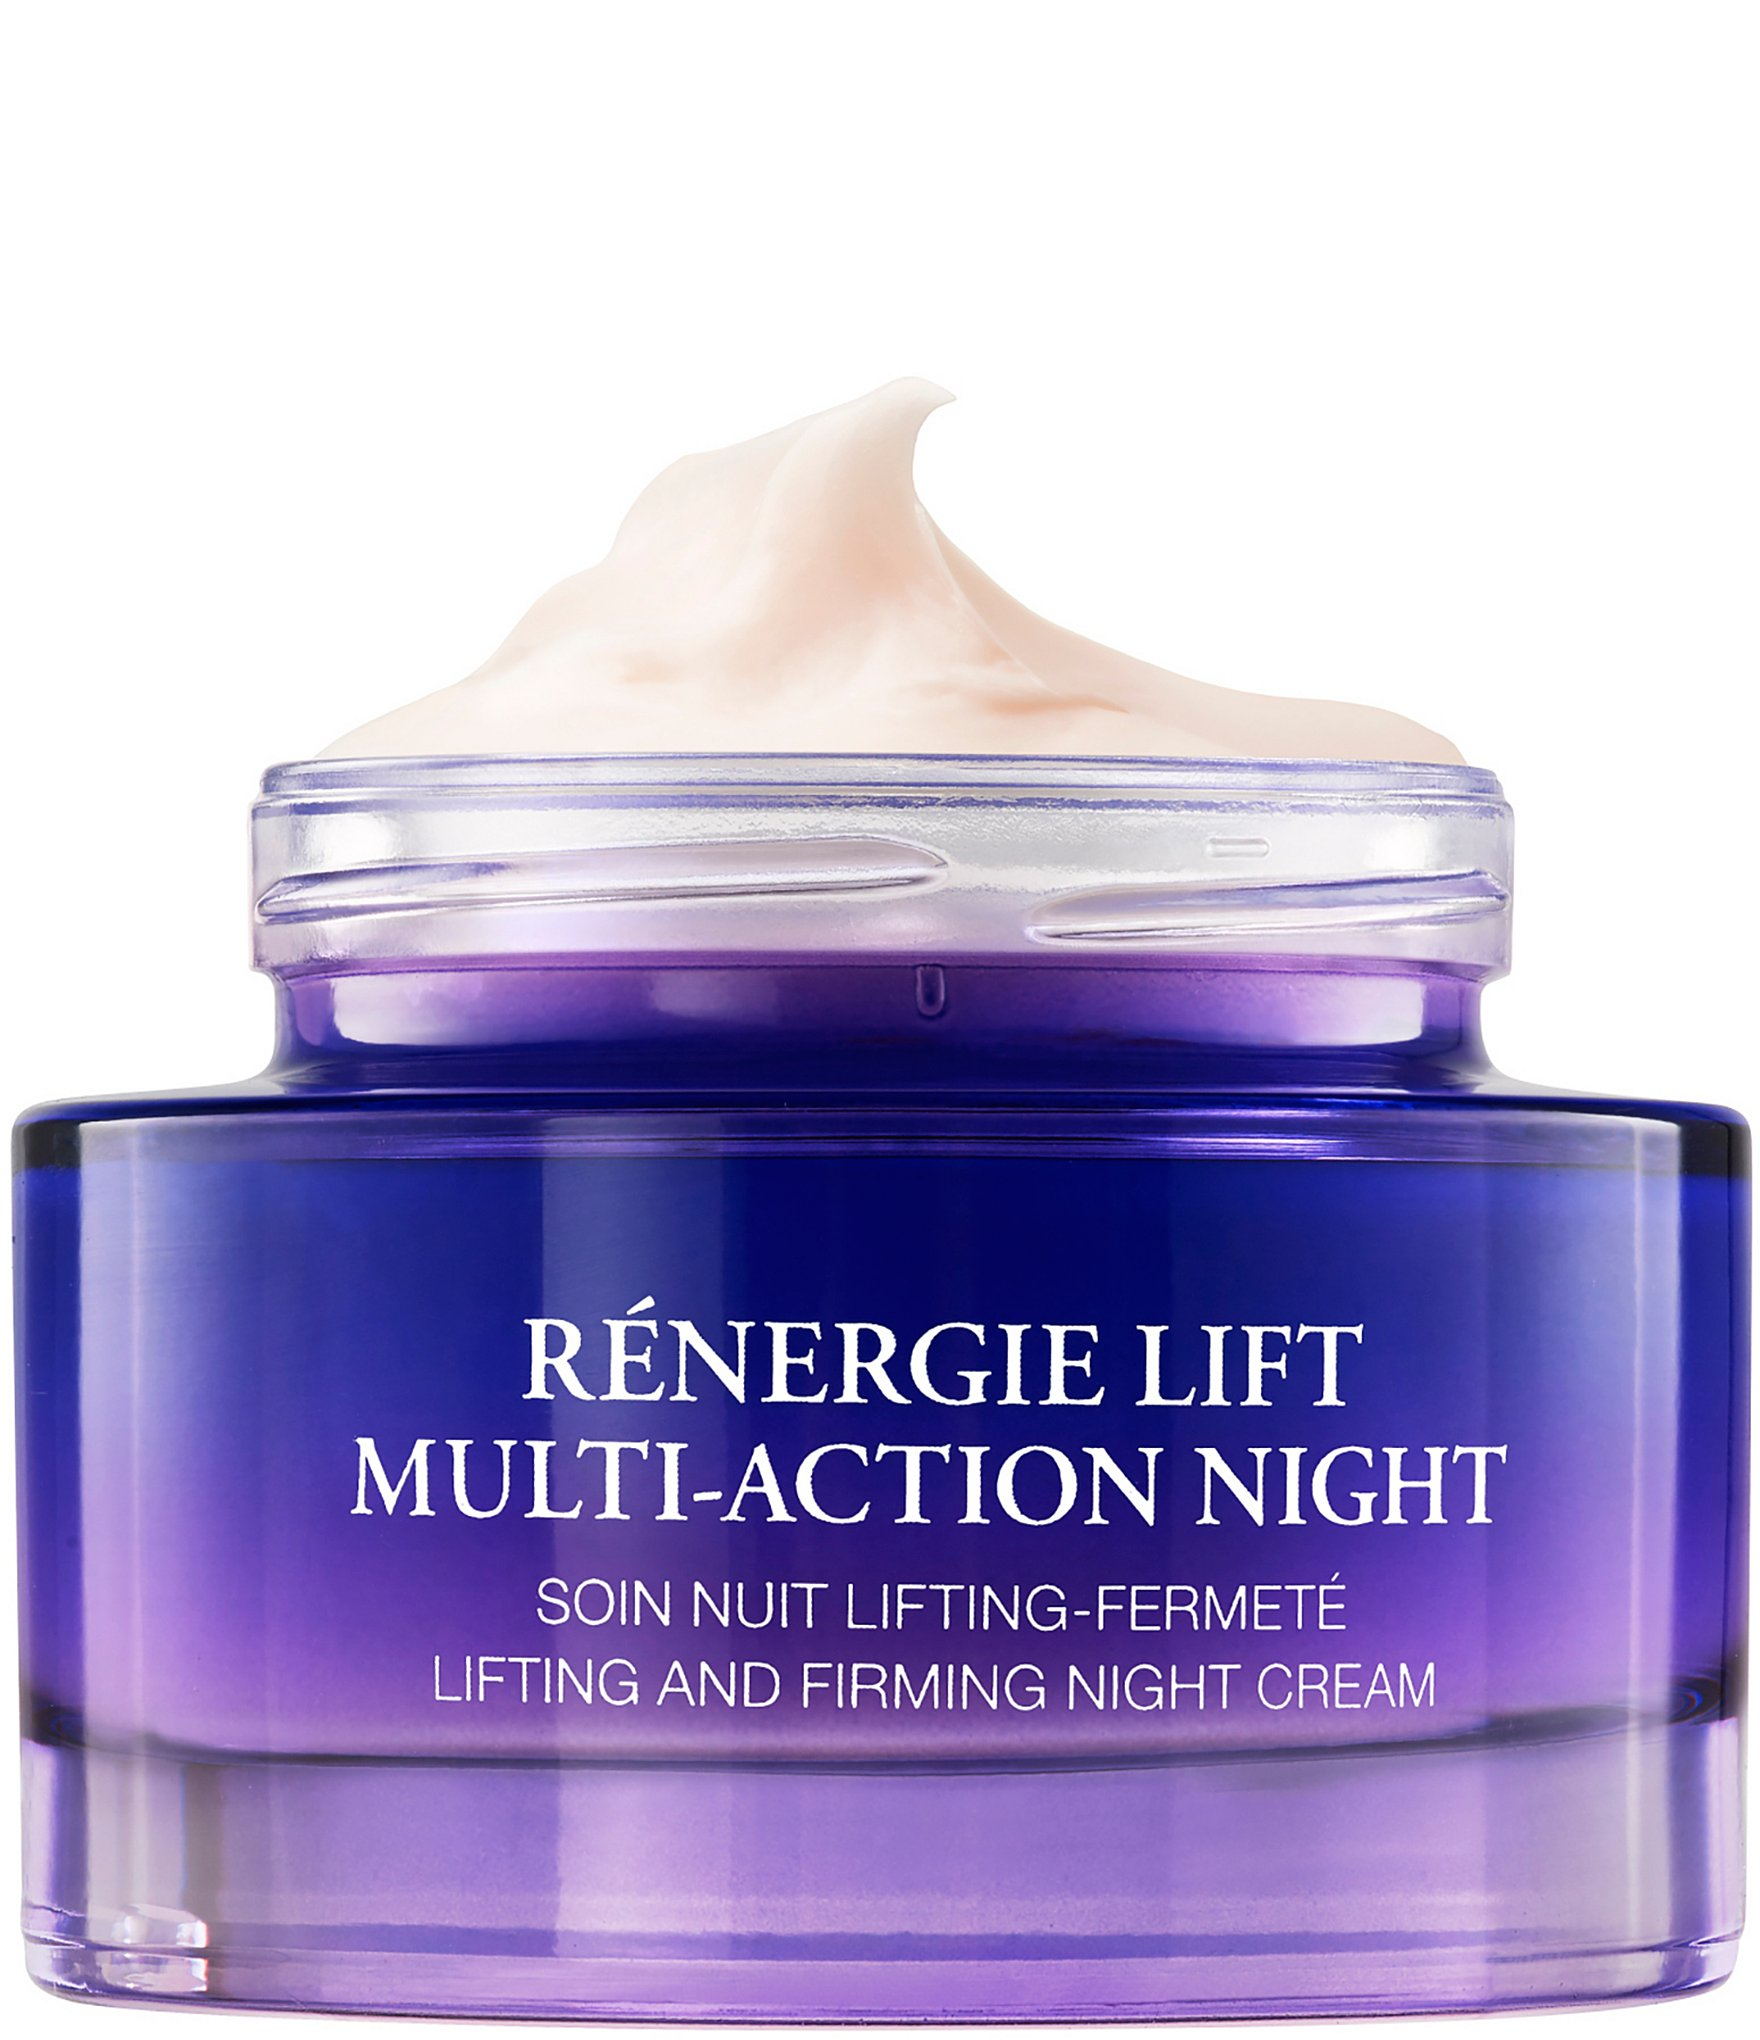 Beverly hills lift and firm cream reviews - Lancome Renergie Lift Multi Action Lifting And Firming Night Cream Dillards